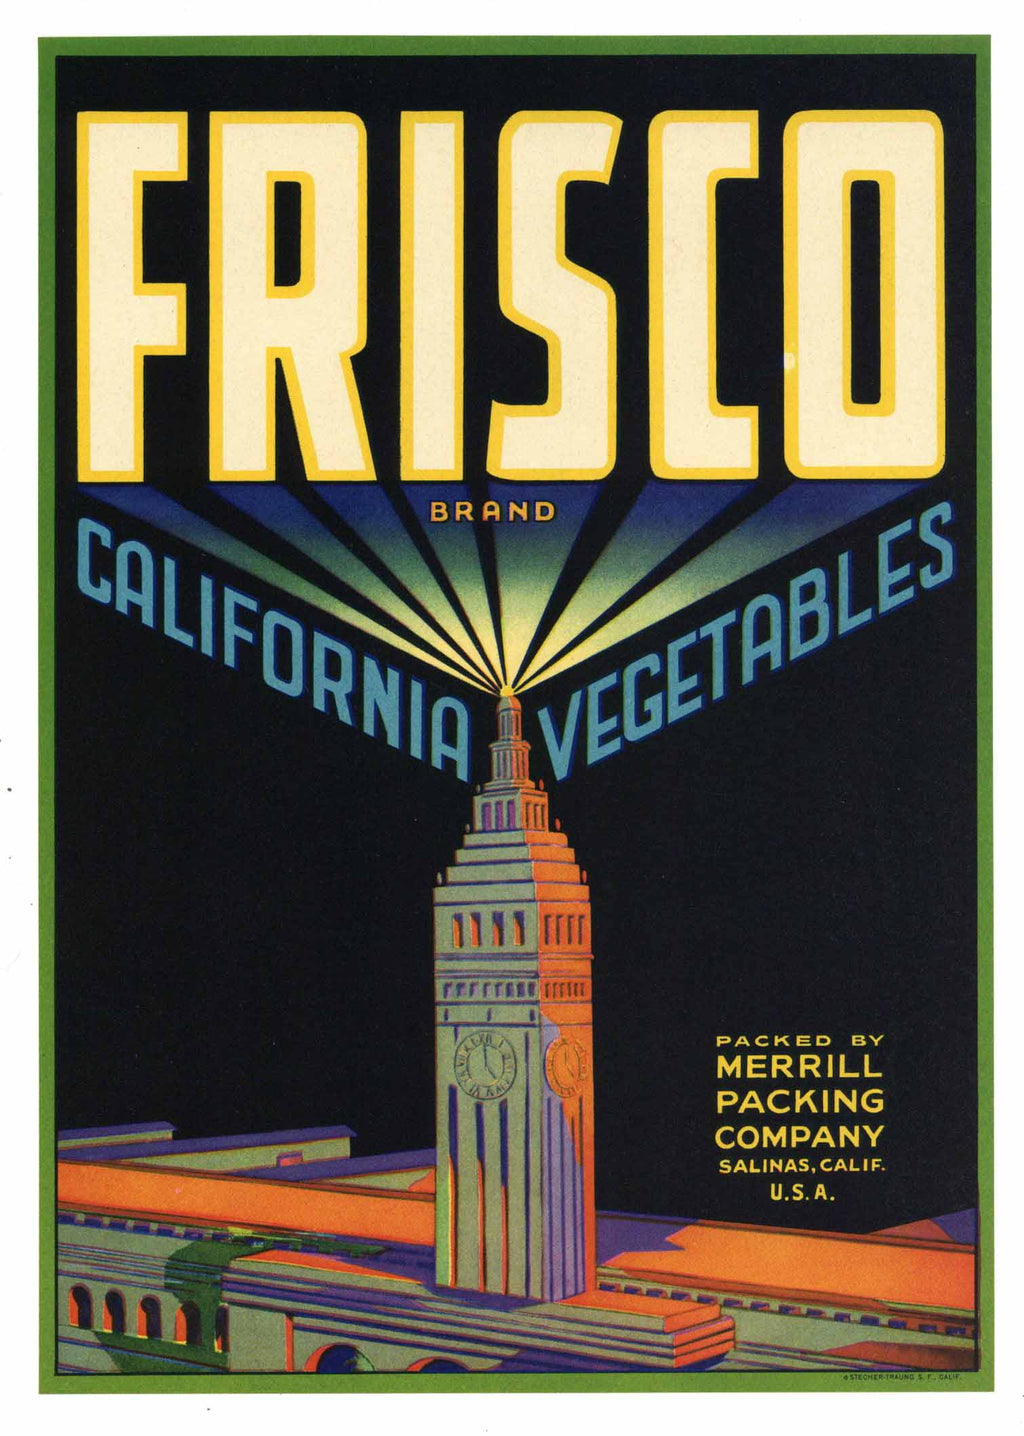 Frisco Brand Vintage Salinas Vegetable Crate Label